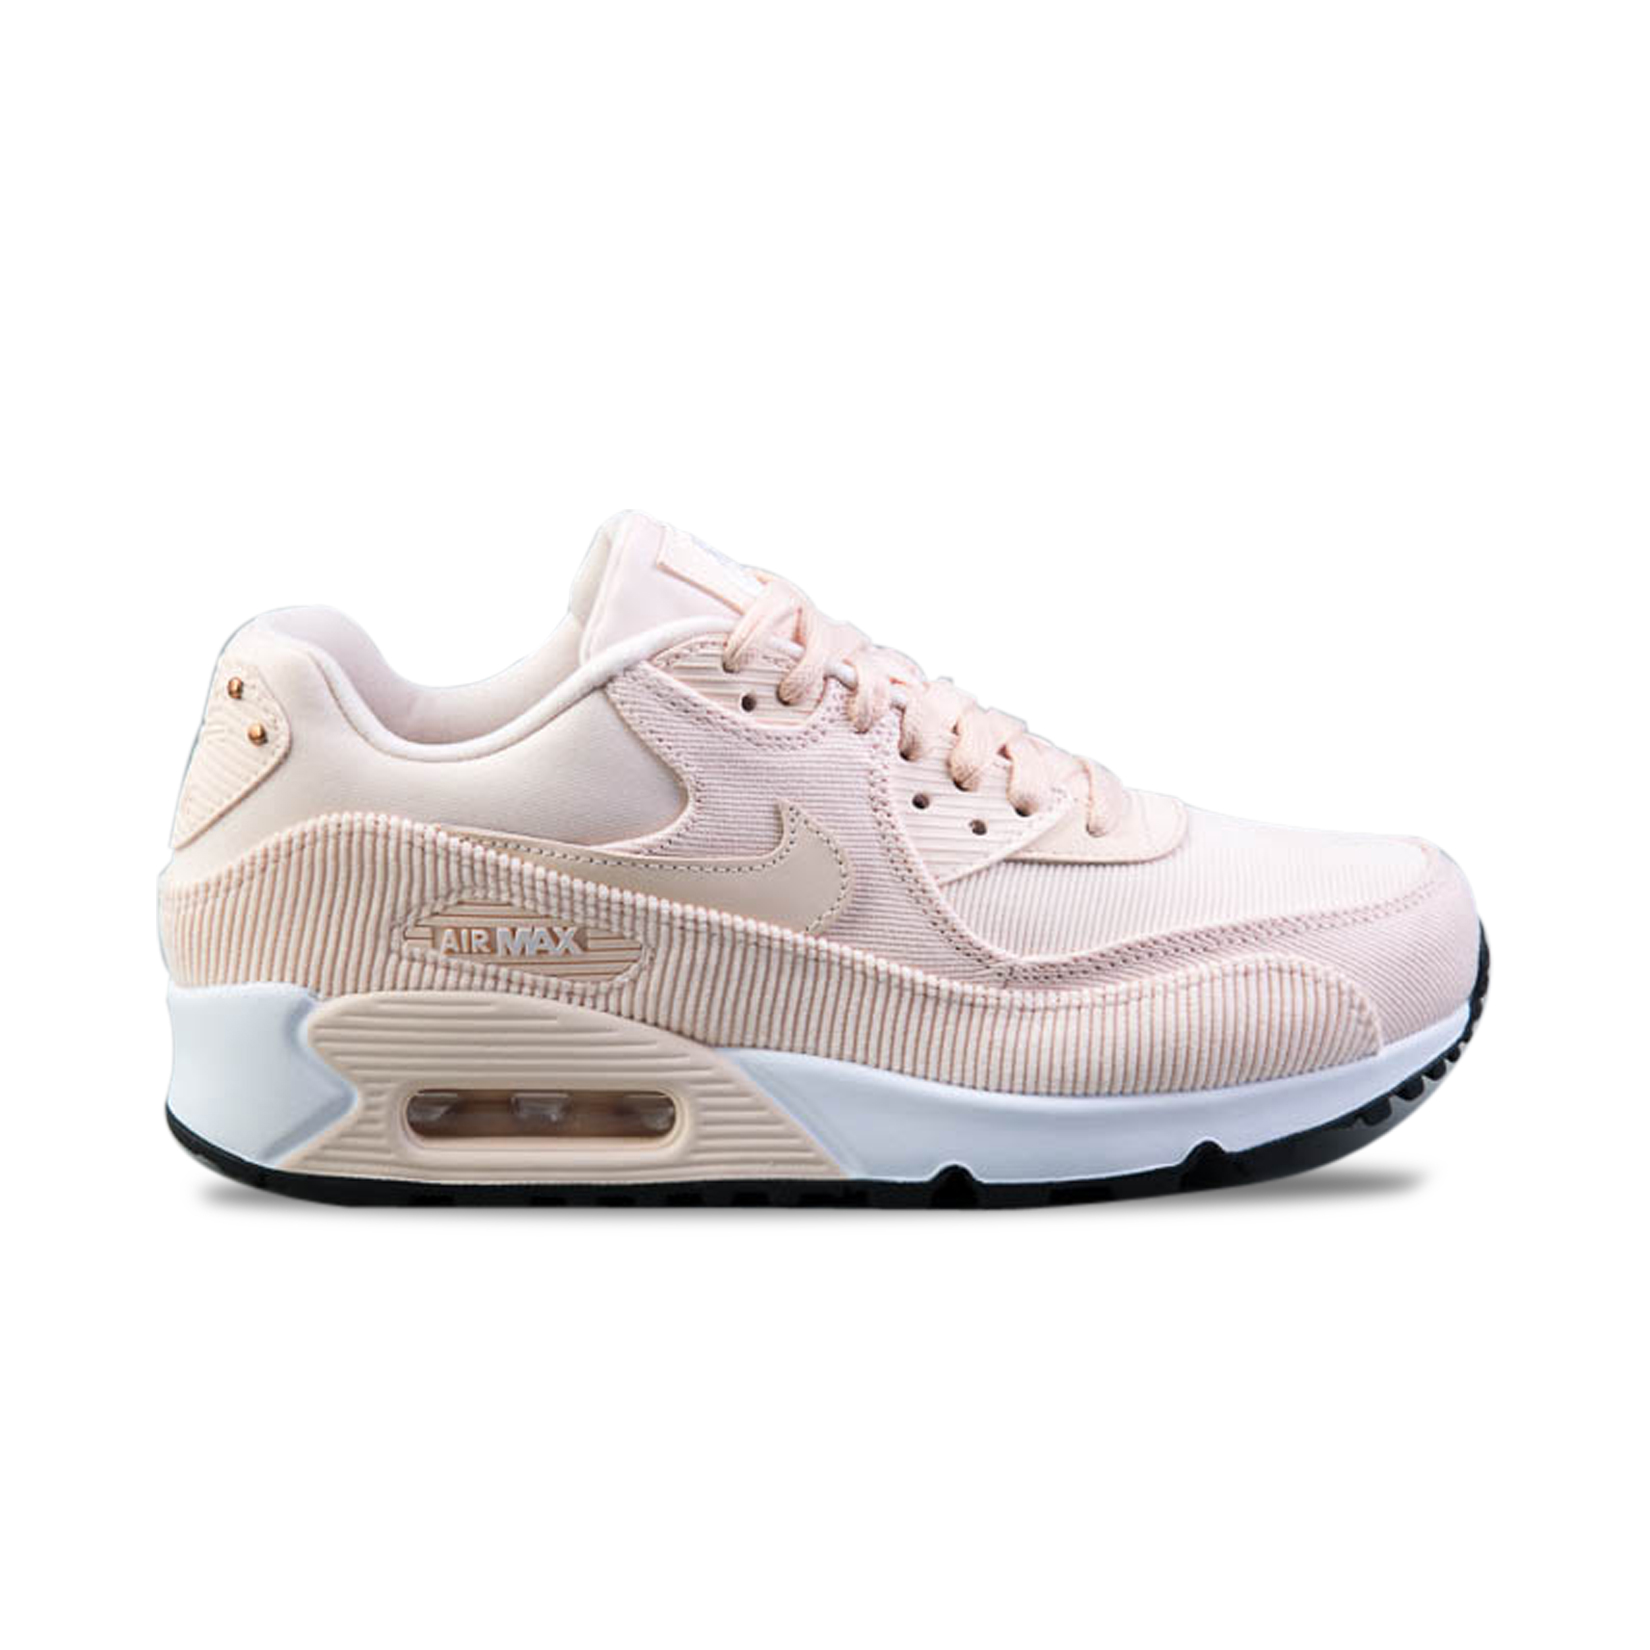 Nike Air Max 90 Essential Pink